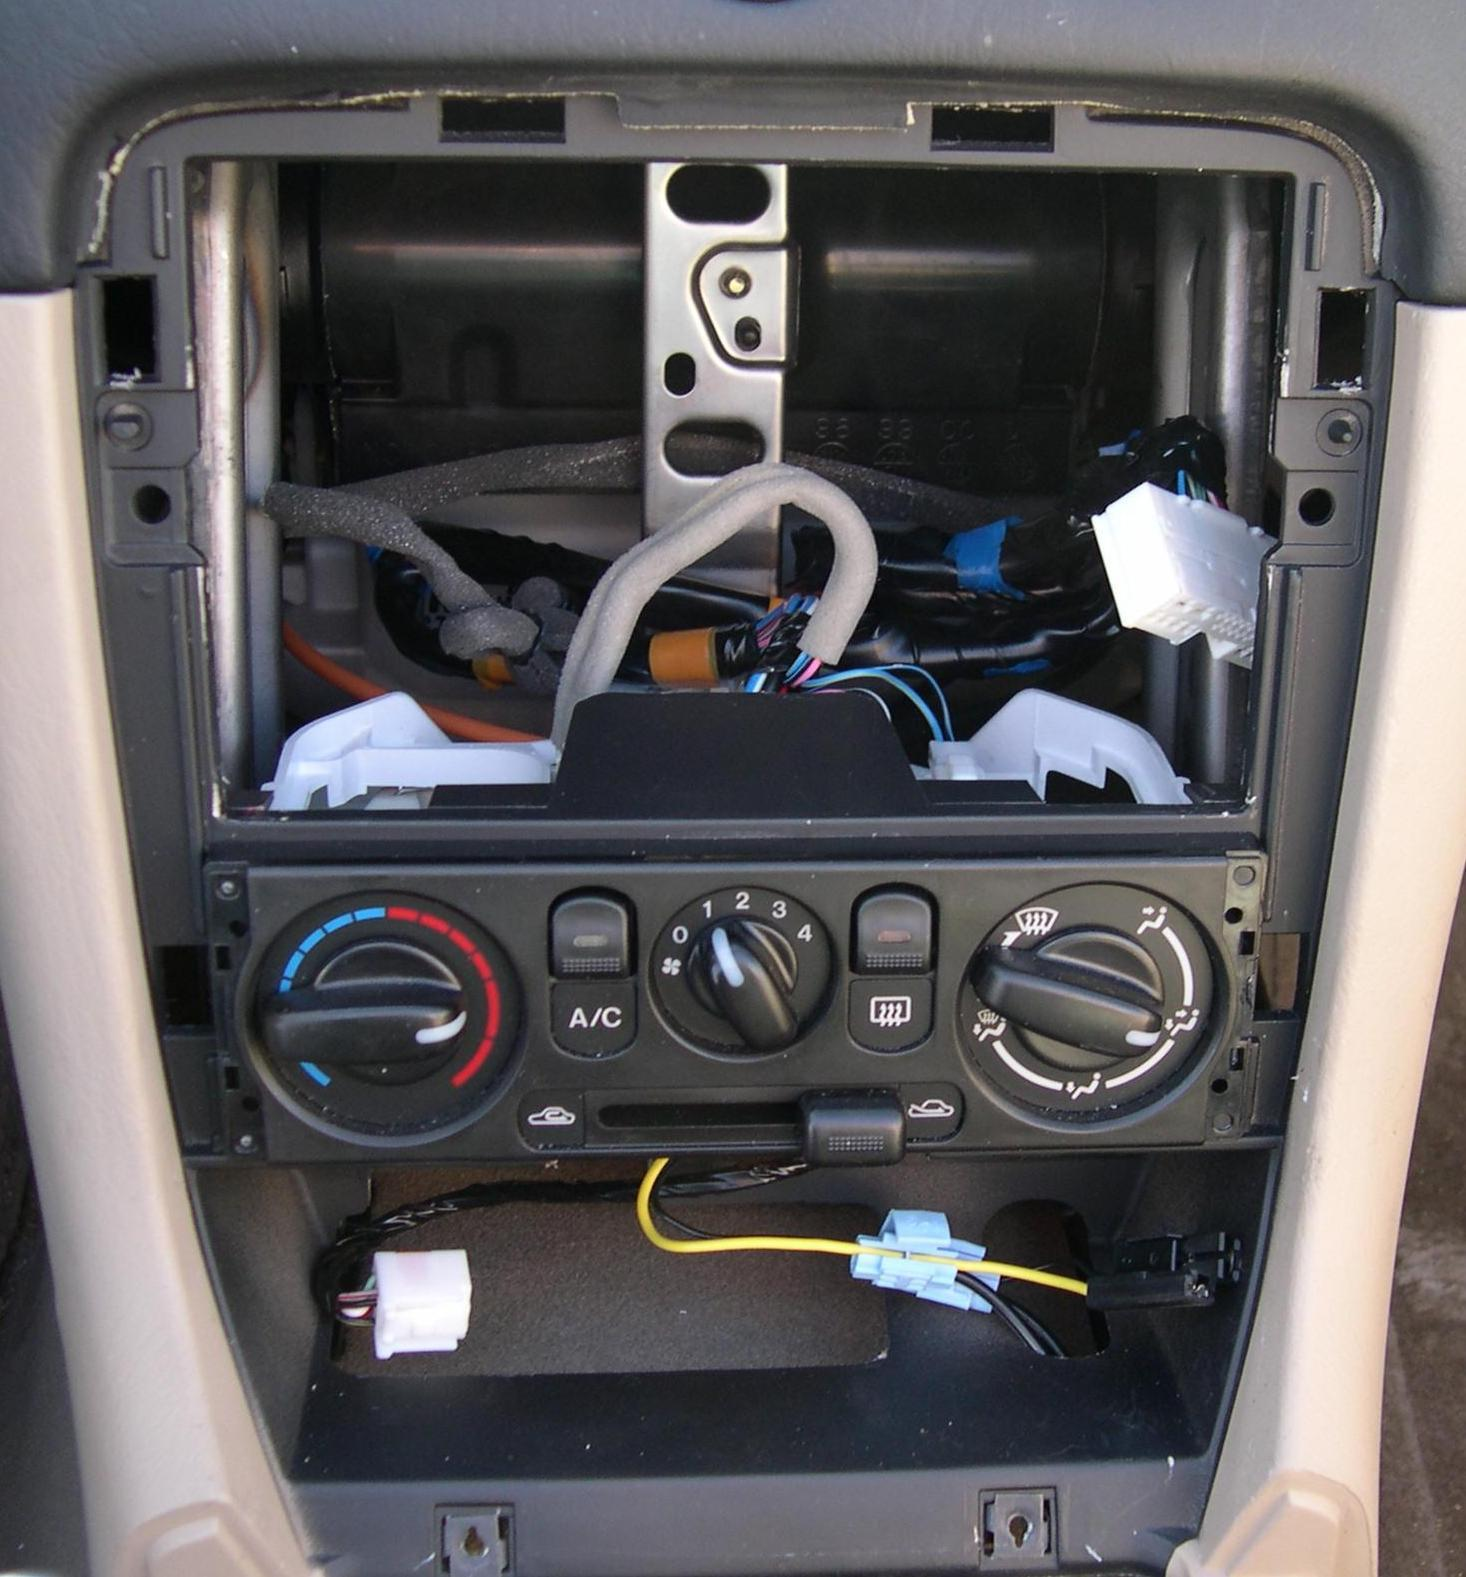 The Mazda Nb Oem Audio System Faq 2004 Chevy Silverado Stereo Speaker Wiring 2001 Radio Out Photo Stephen Foskett